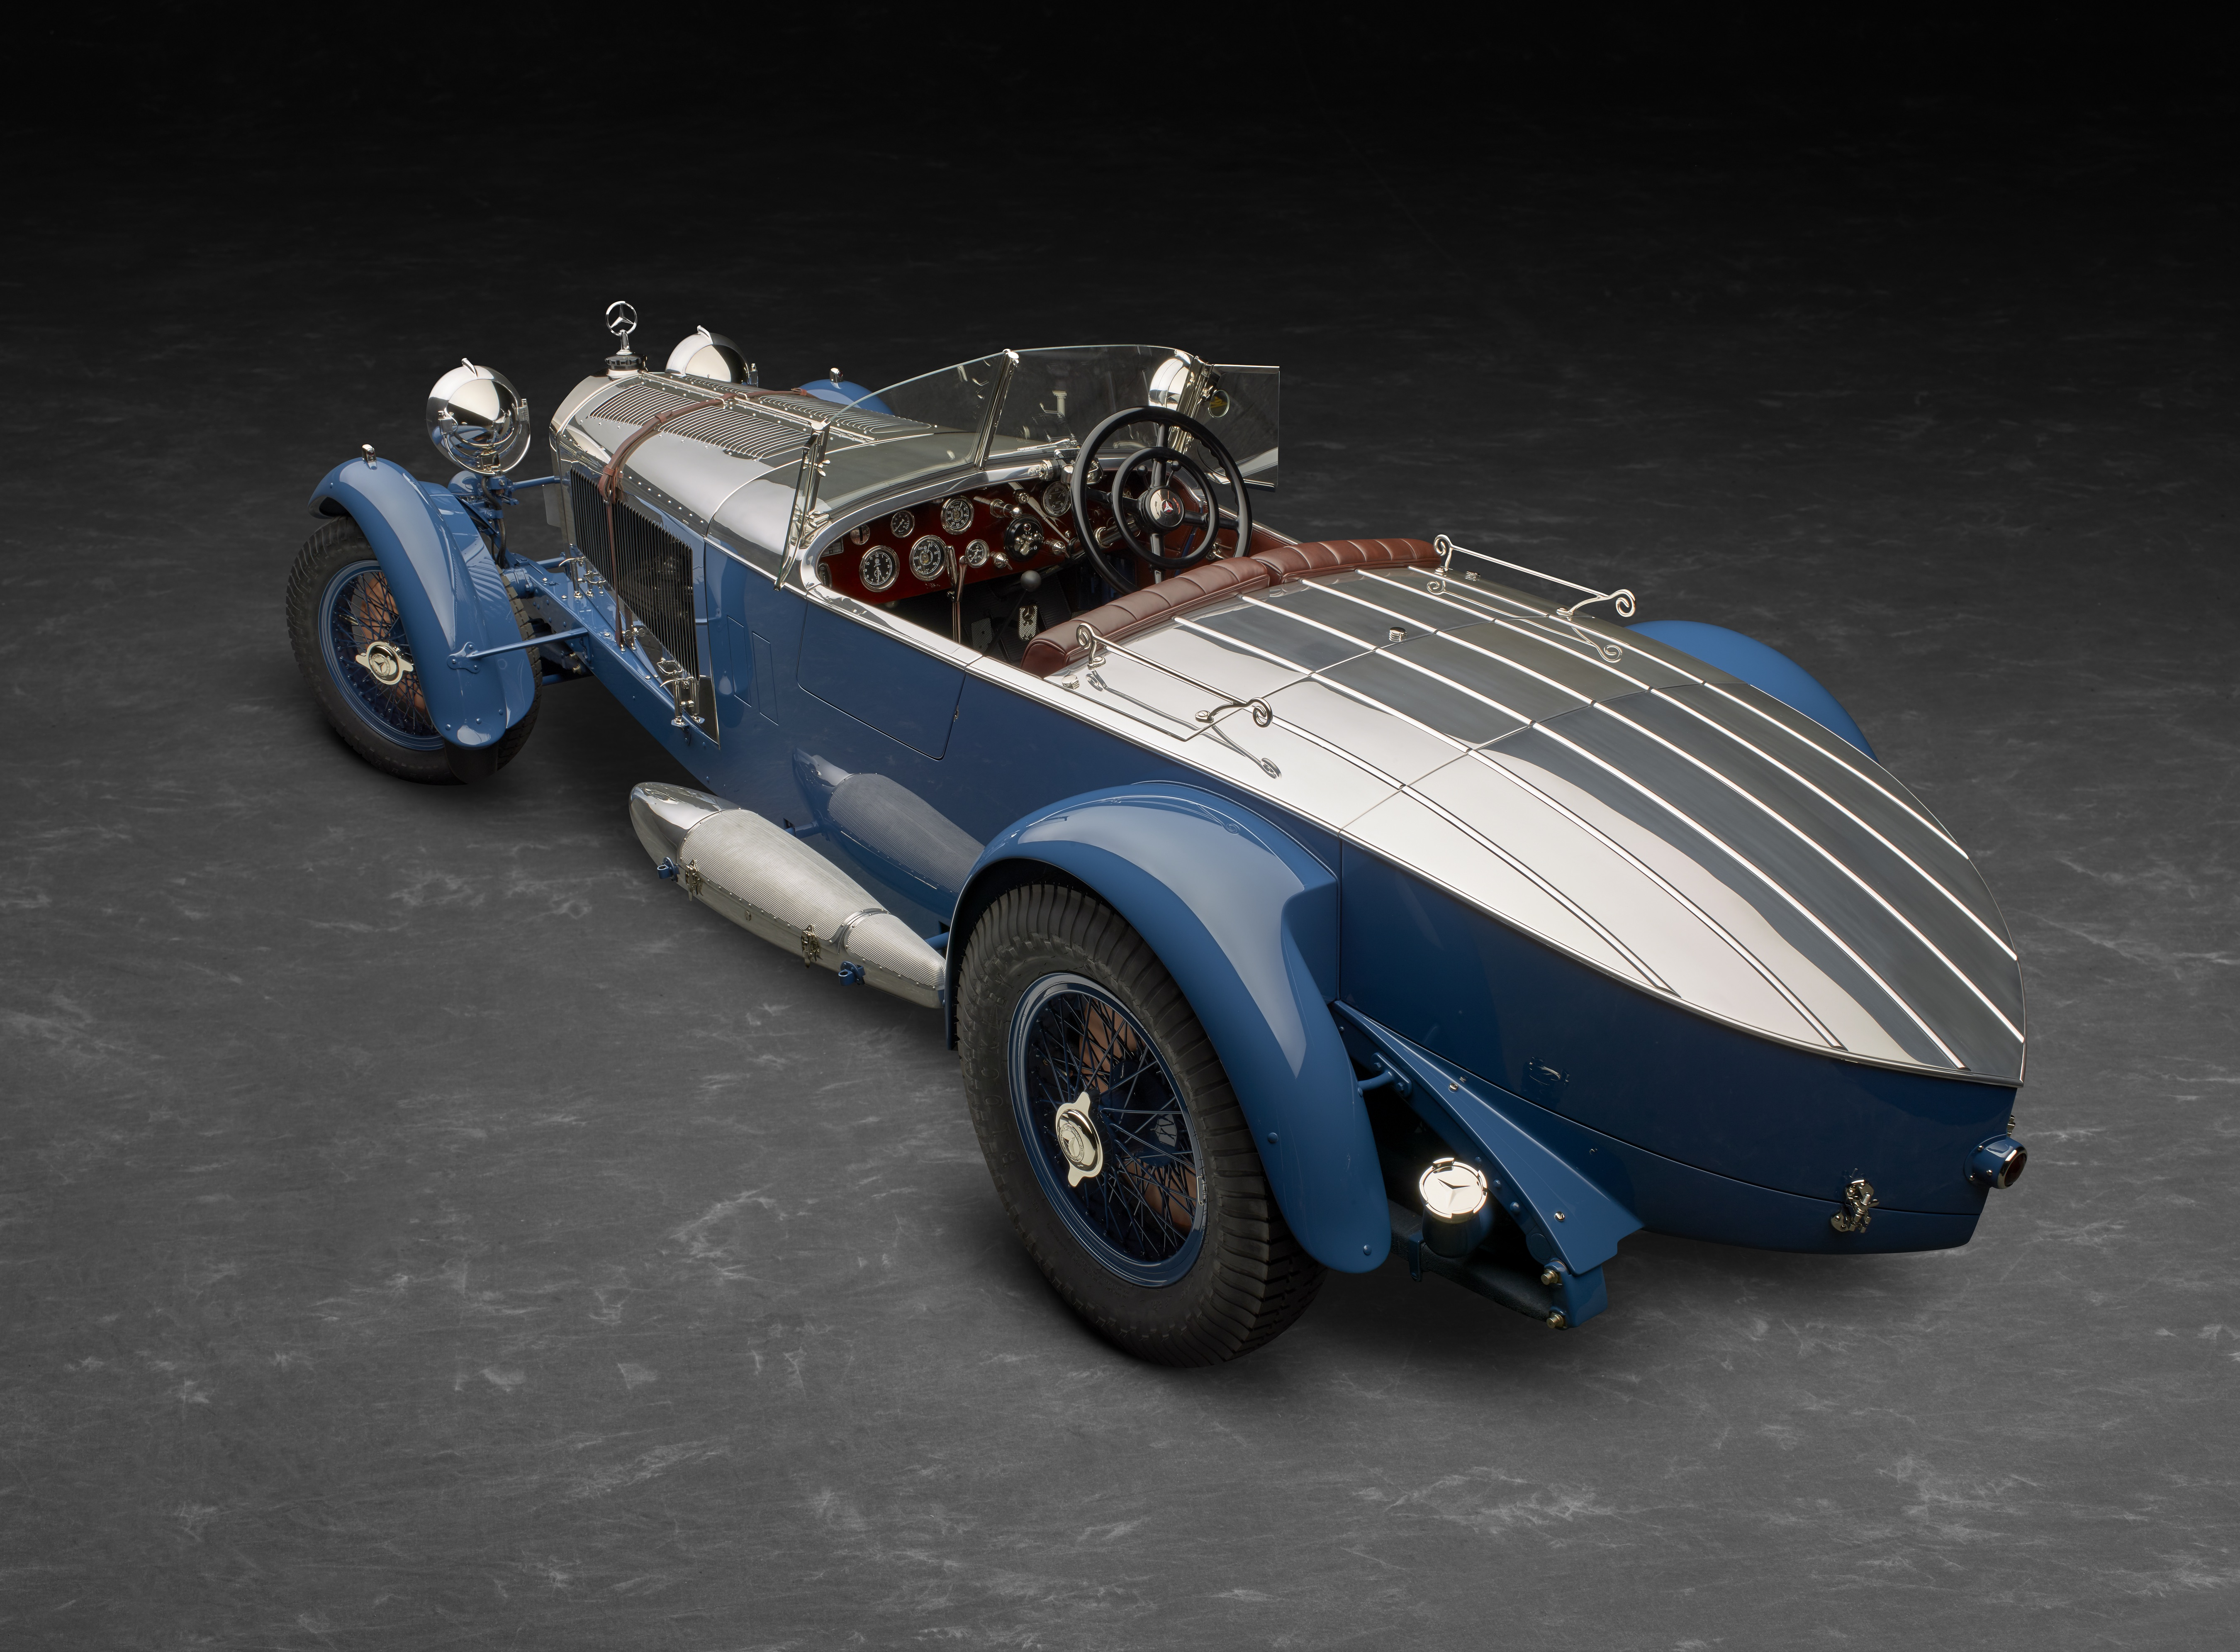 Classic Car PR: The Pebble Beach Concours d'Elegance 'Best in Show' 1929 Mercedes-Benz S Barker 'Boat Tail' will feature at Concours of Elegance 2018